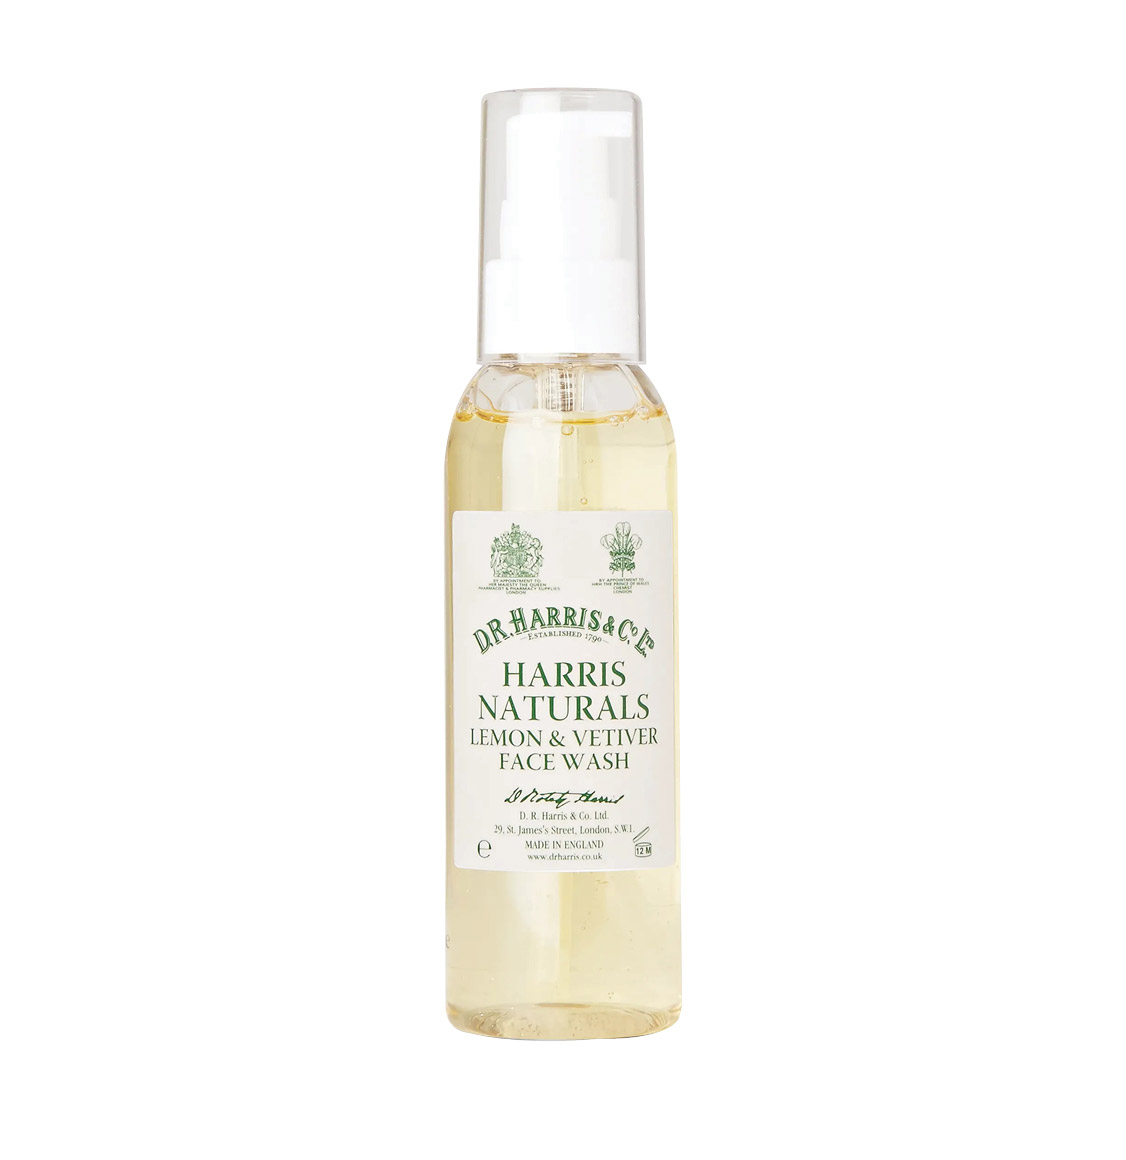 D R Harris Naturals Lemon and Vetiver Face Wash 100ml